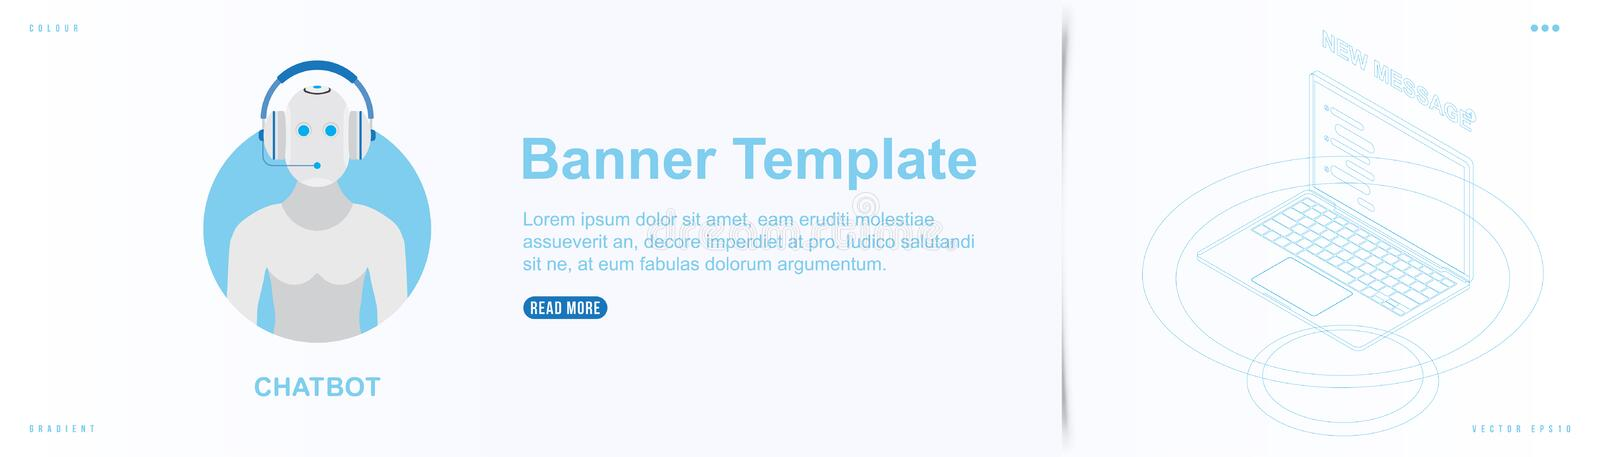 Landing Page design template for web site with Icon Chatbot on the background. Outline drawing laptop in isometric style vector illustration